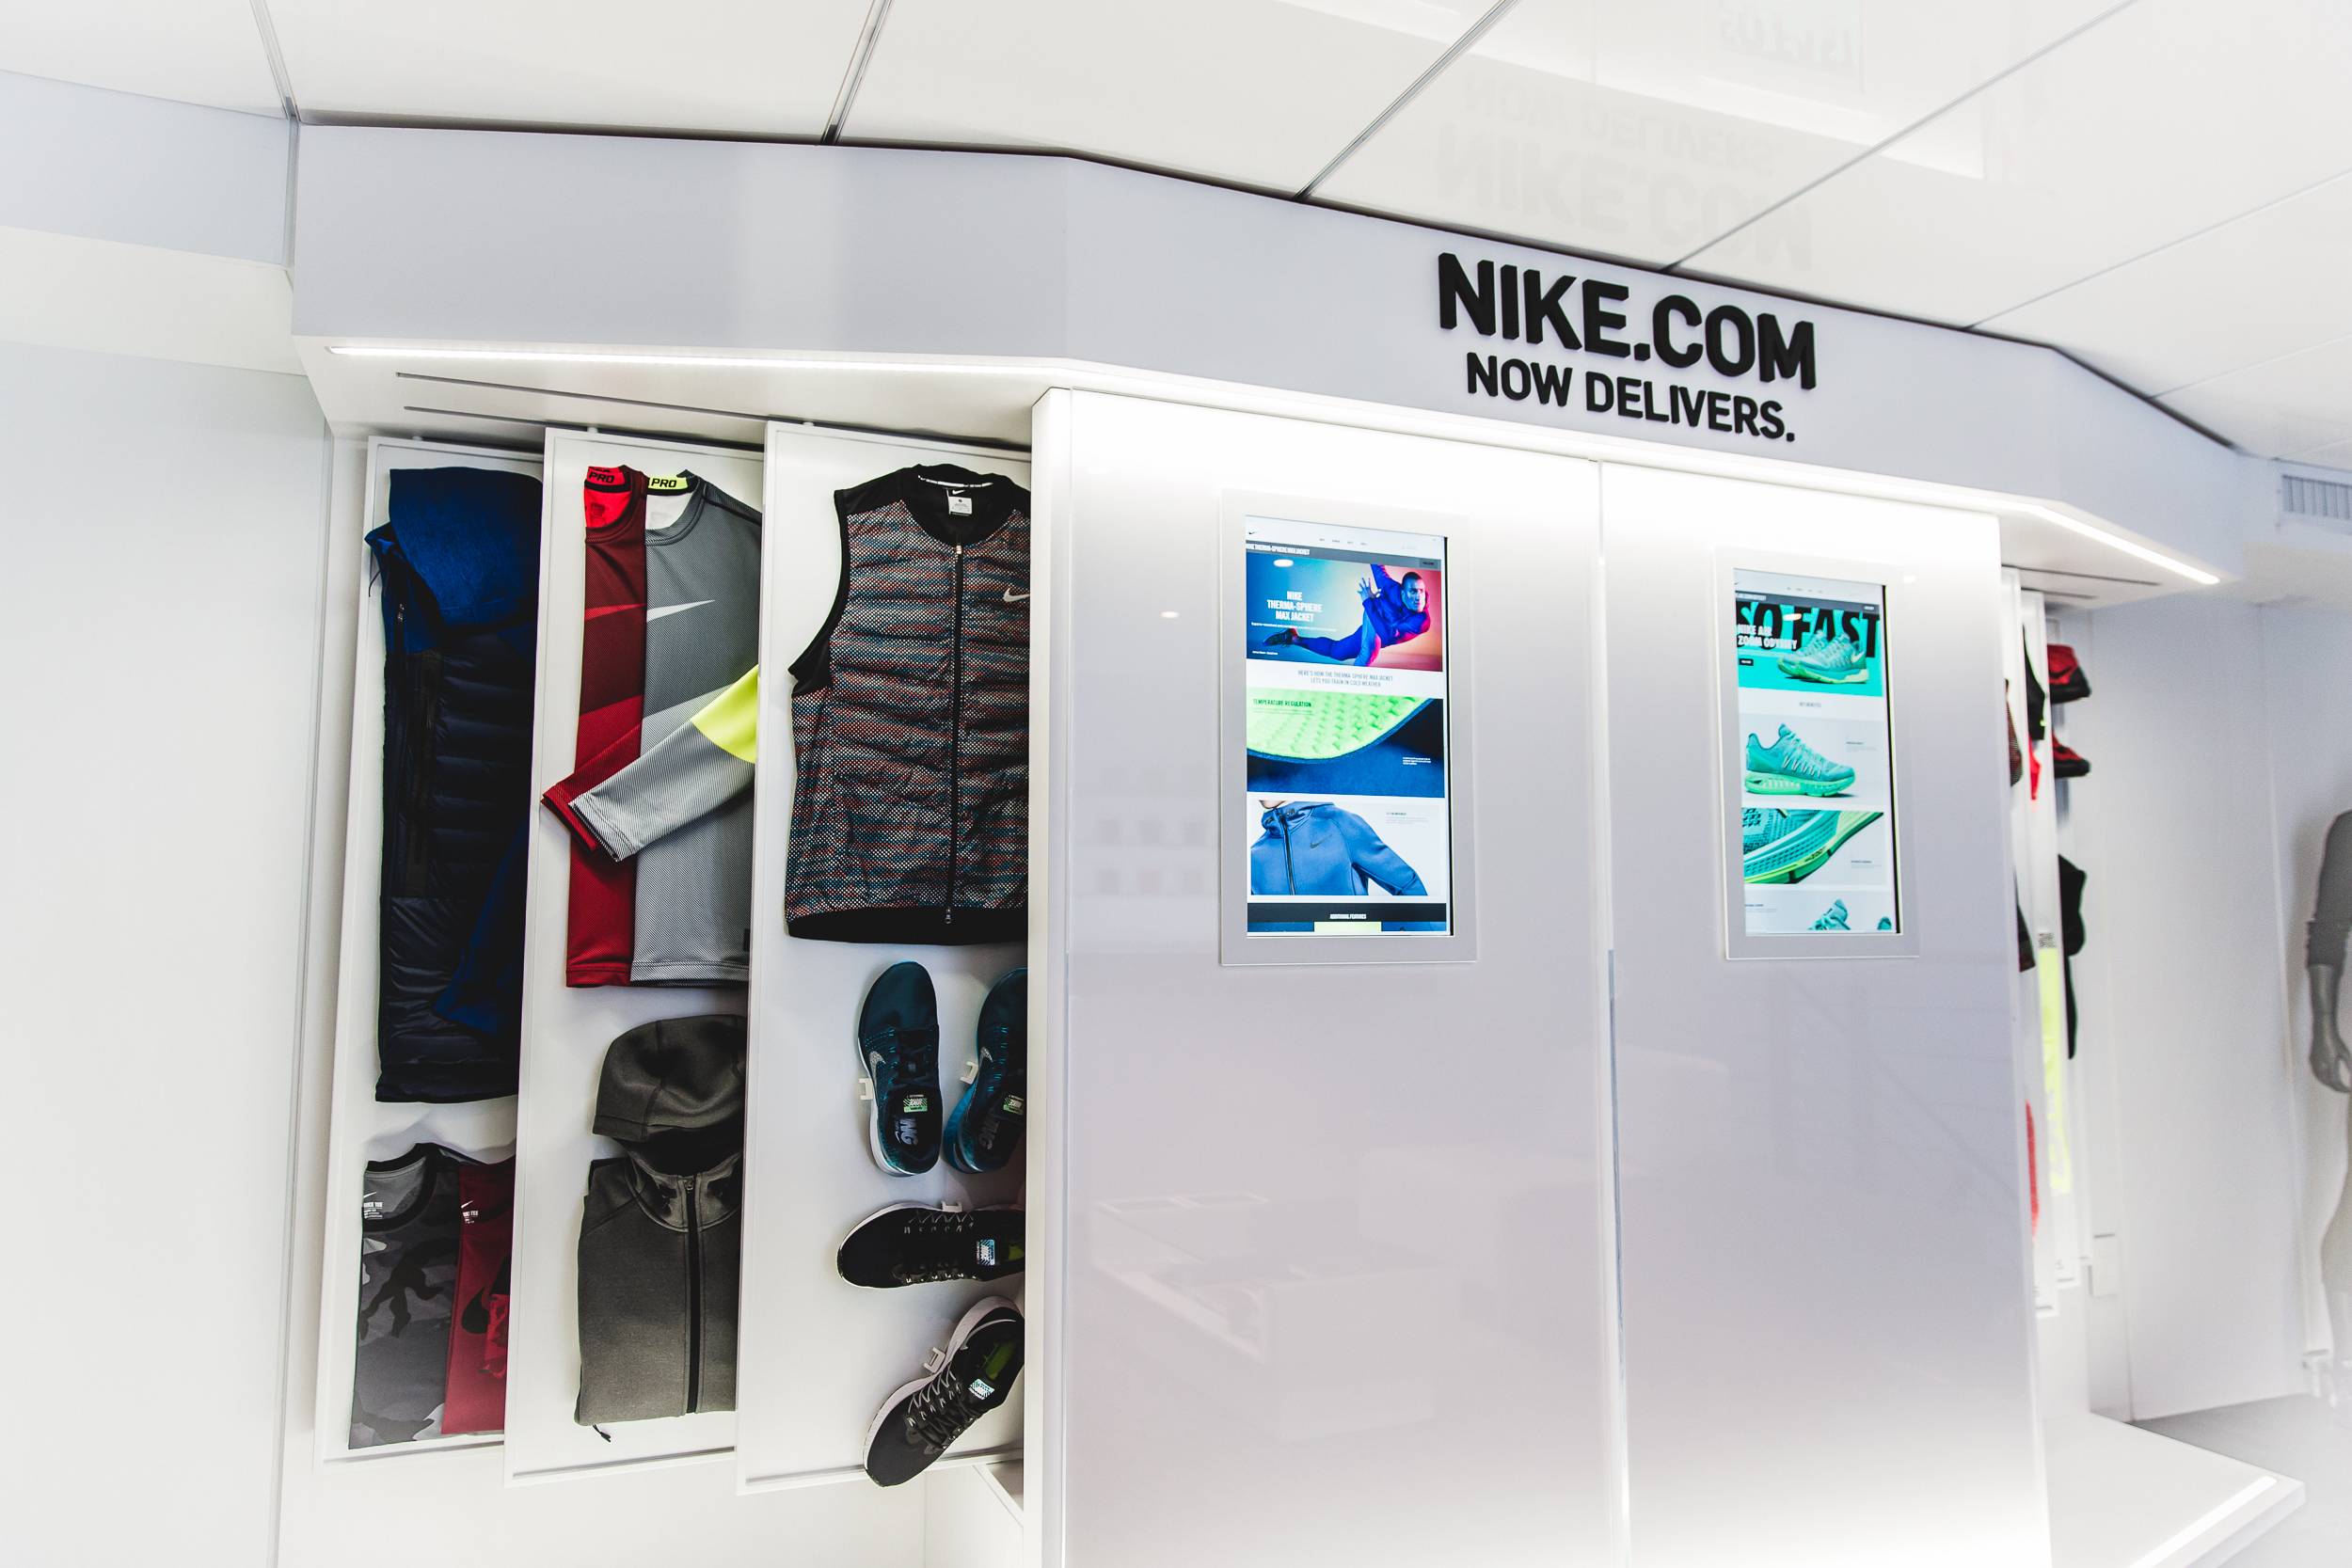 Nike Dot Com Launch